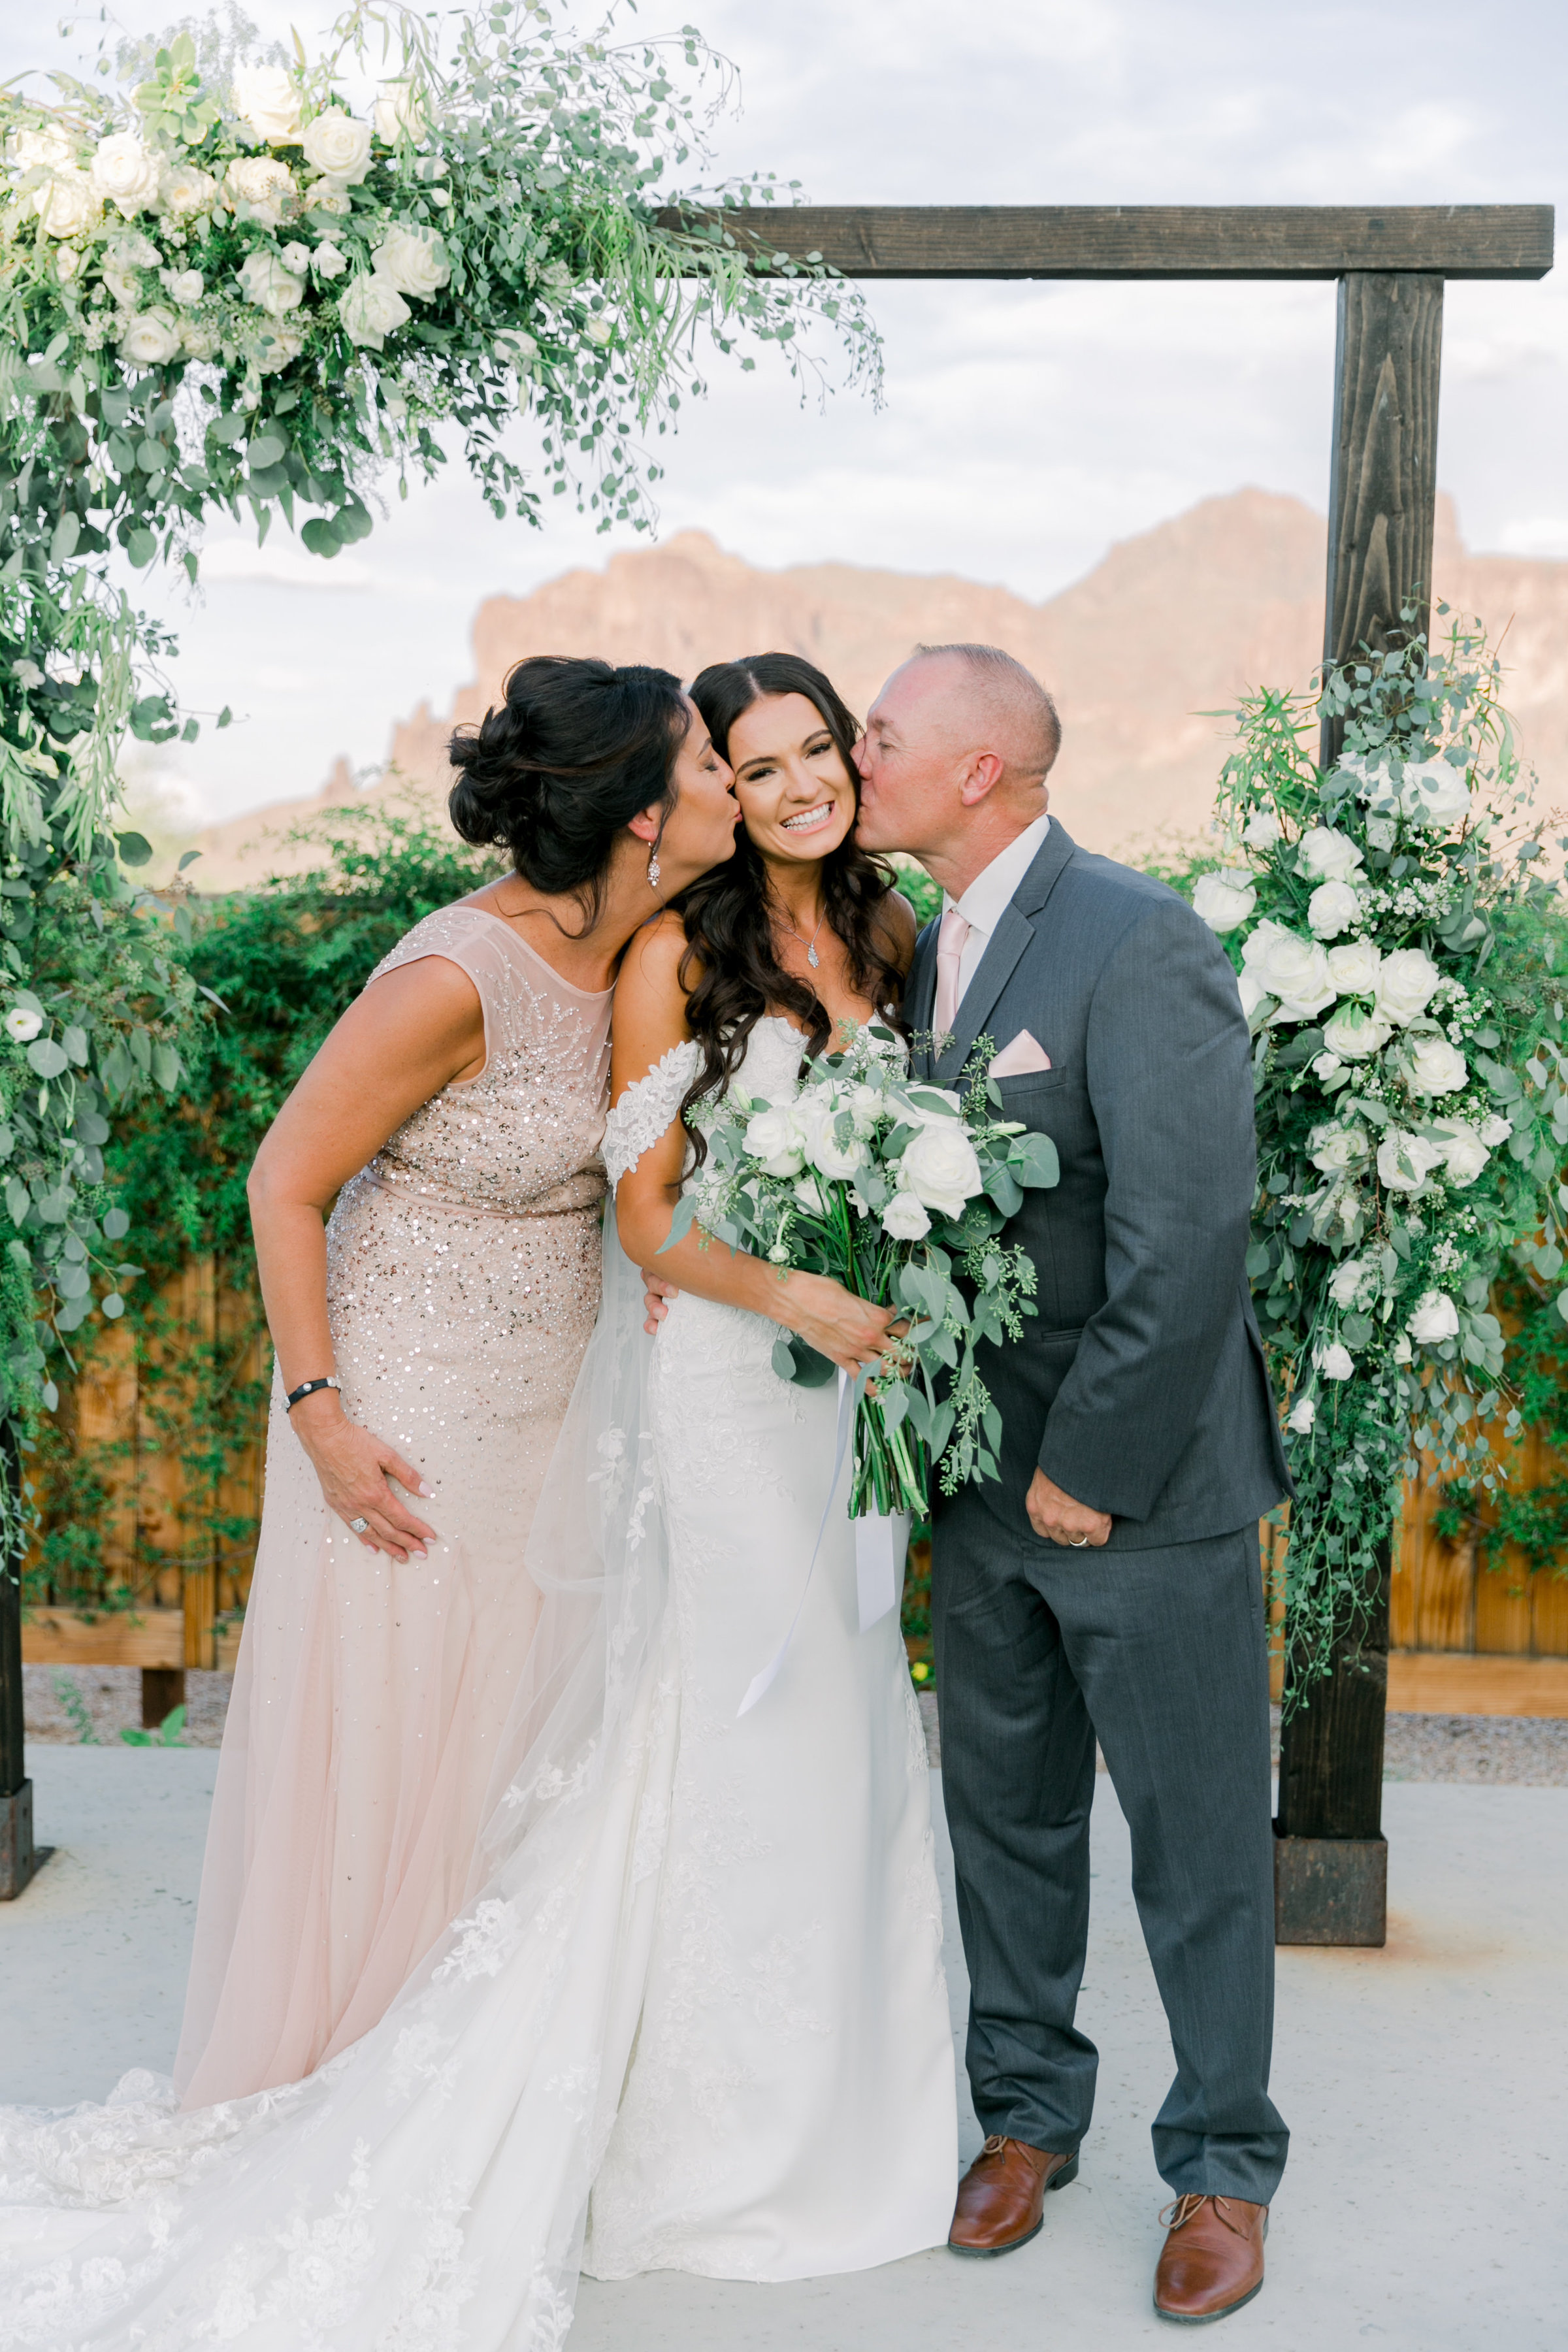 Karlie Colleen Photography - The Paseo Arizona Desert Wedding - Jackie & Ryan-113